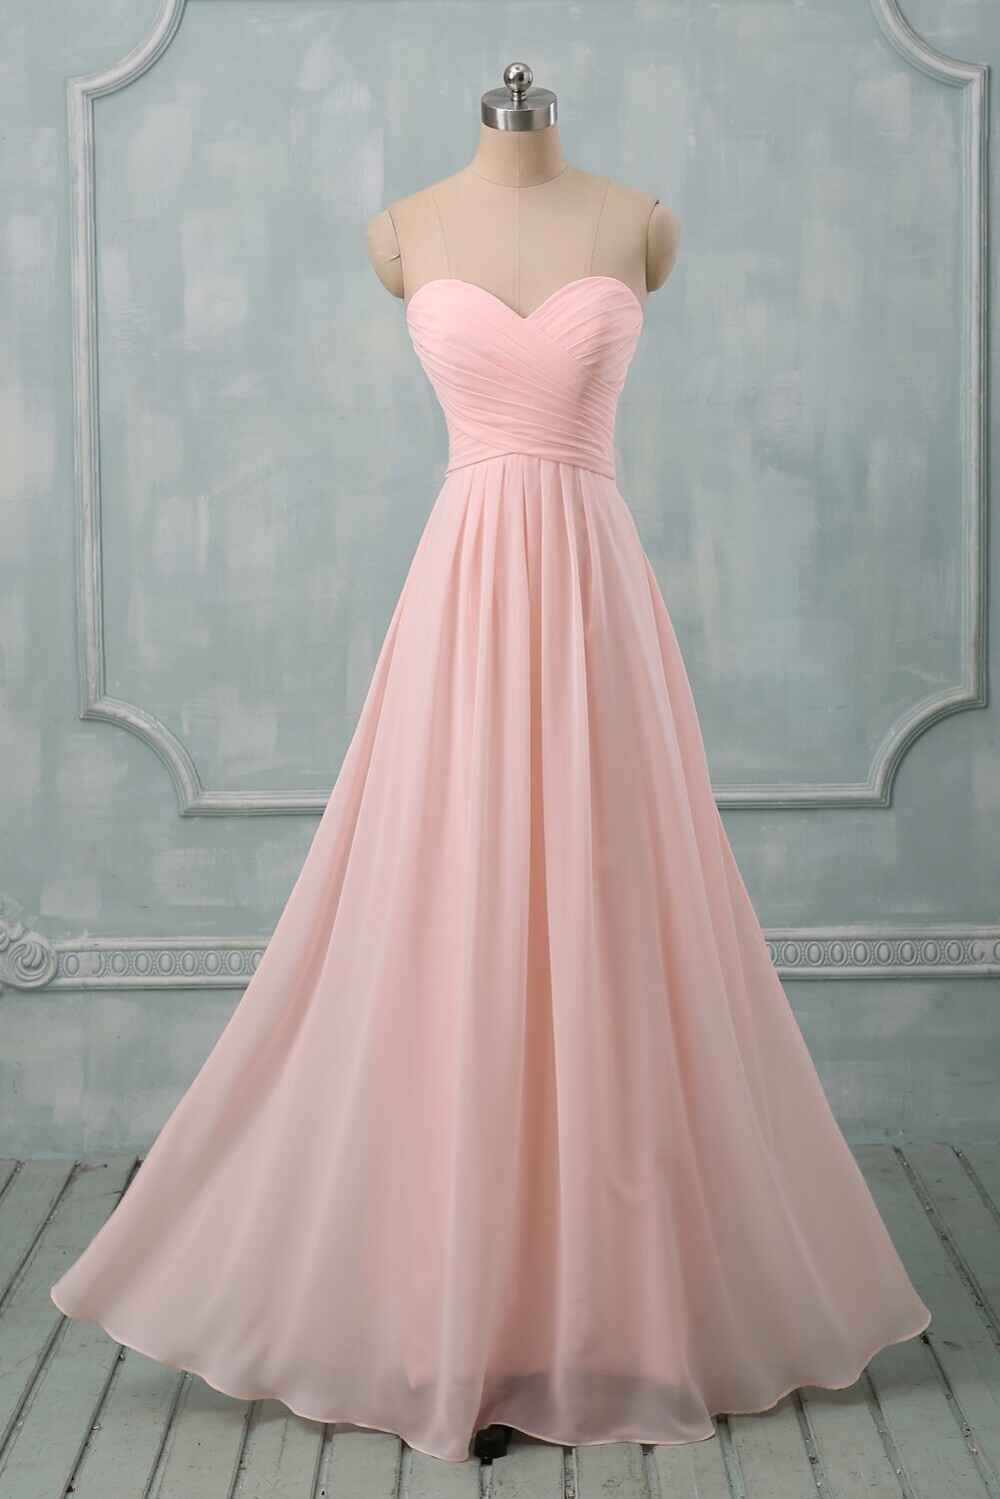 84c4ffd015f Simple Pink Bridesmaid Dresses